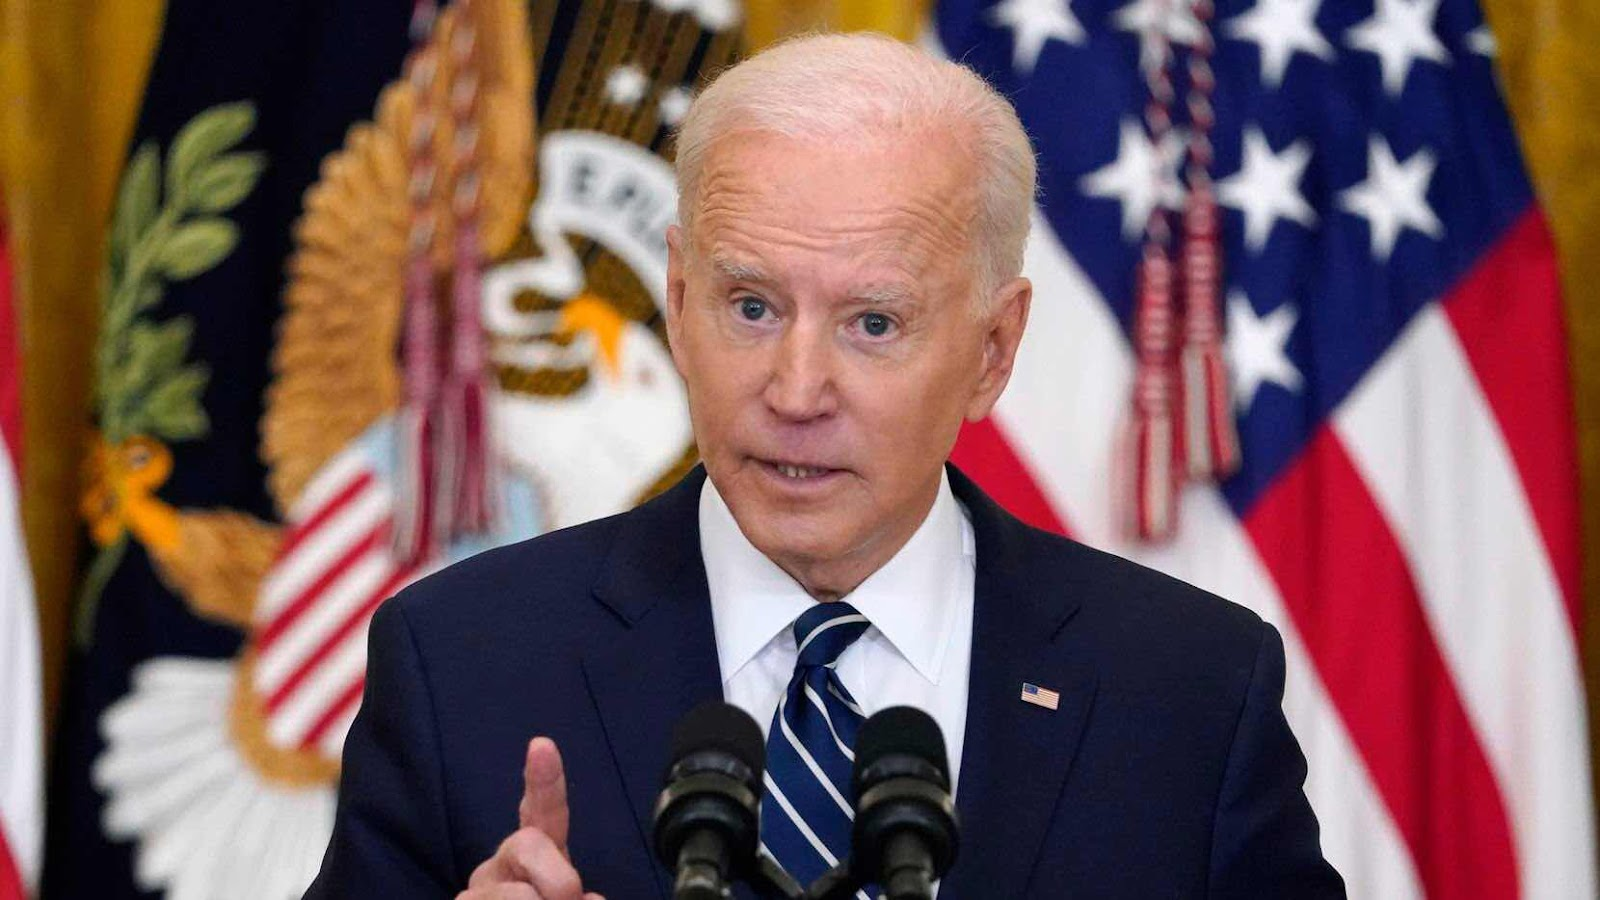 President Joe Biden speaks during a news conference in the East Room of the White House on March 25, 2021.(Evan Vucci)